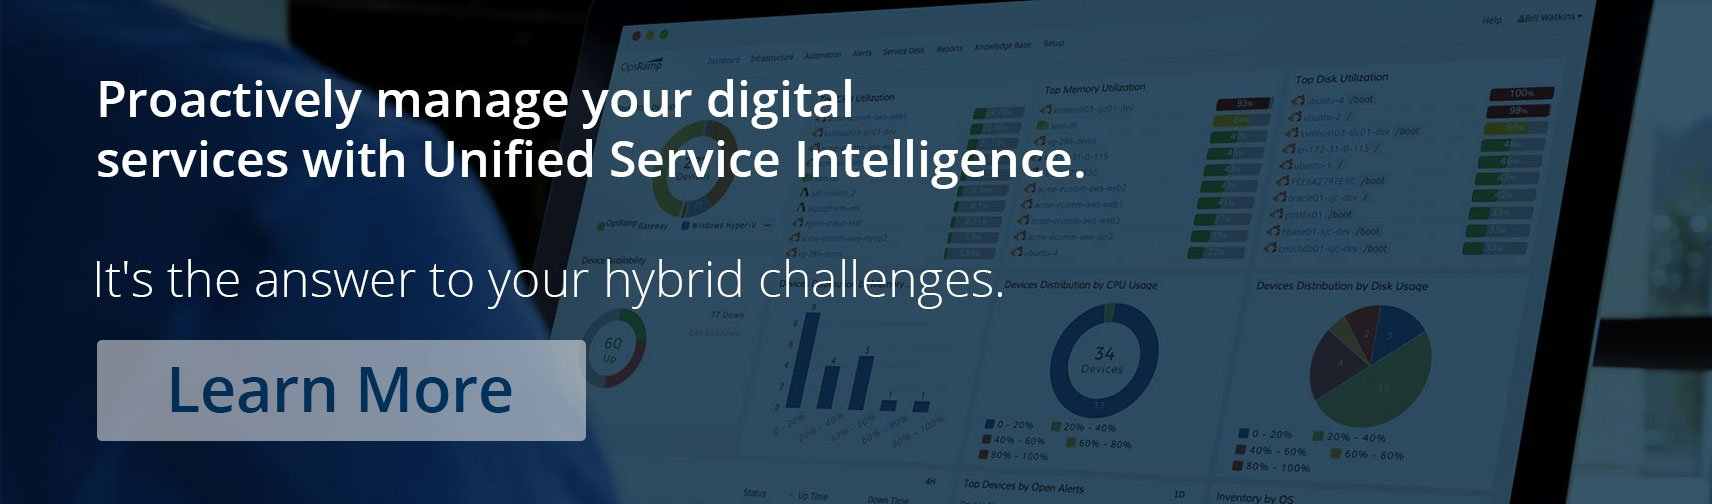 Unified Service Intelligence